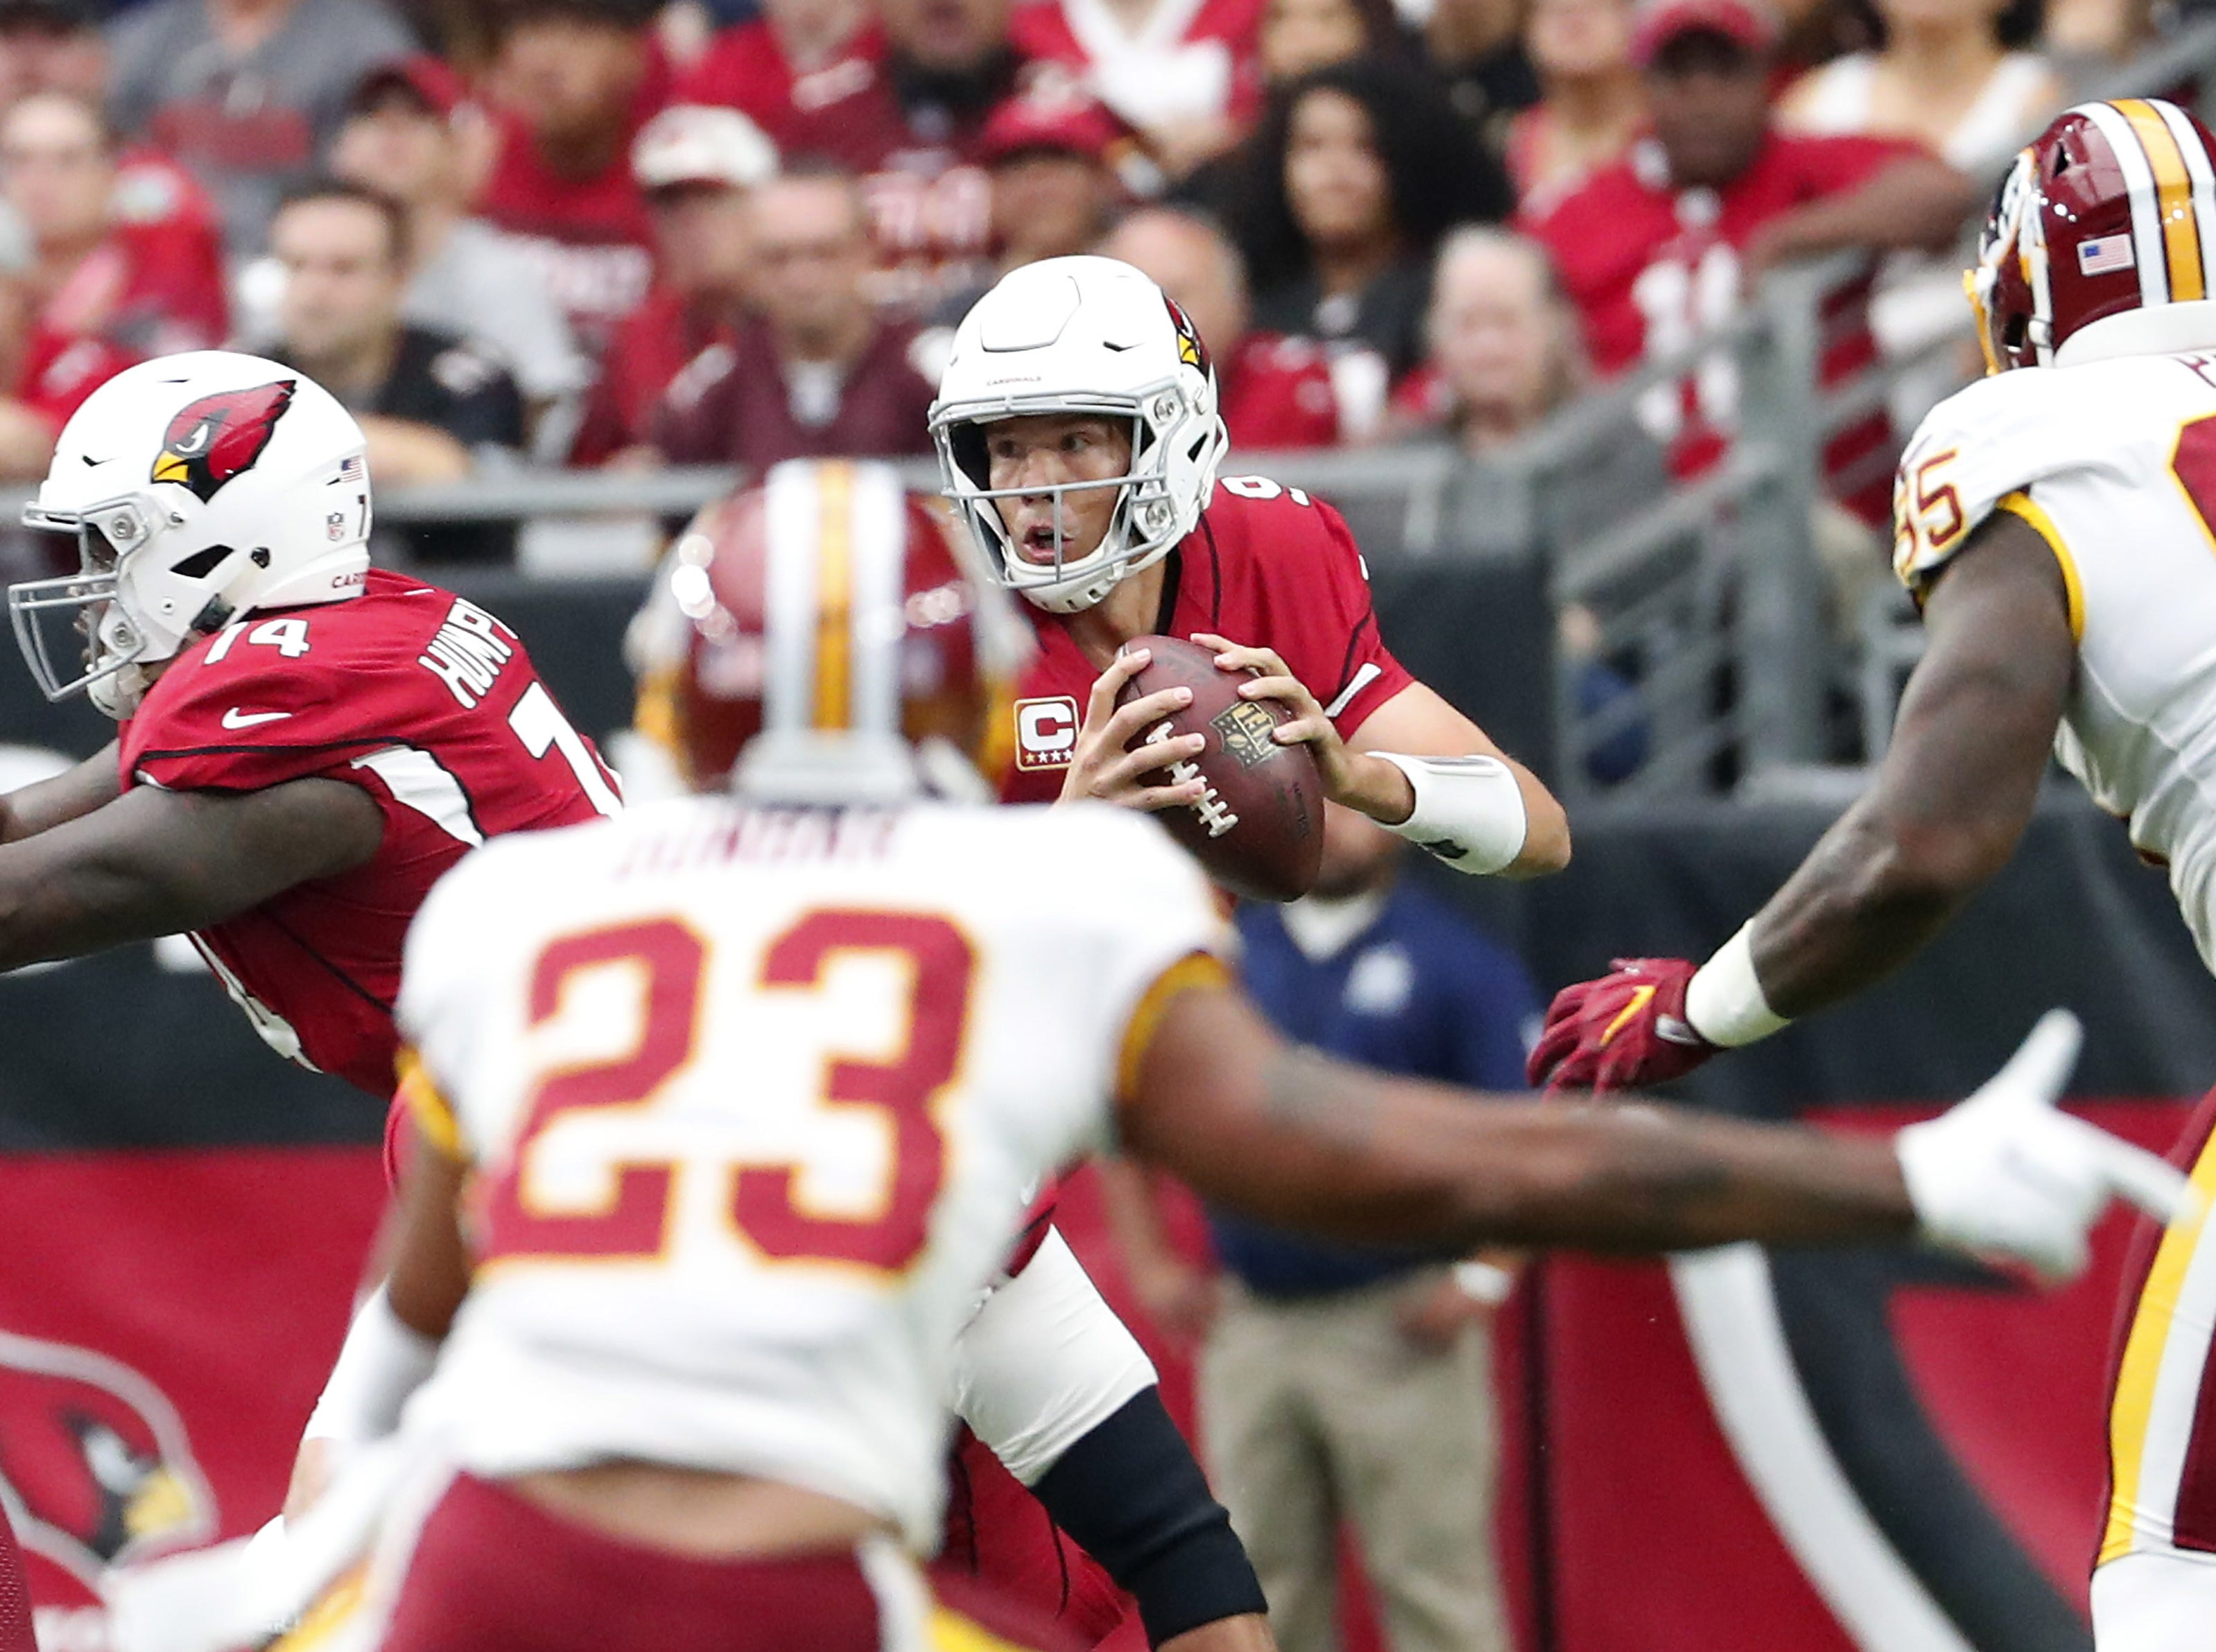 Arizona Cardinals quarterback Sam Bradford (9) scrambles under pressure against the Washington Redskins during the first quarter at State Farm Stadium in Glendale, Ariz. September 9. 2018.